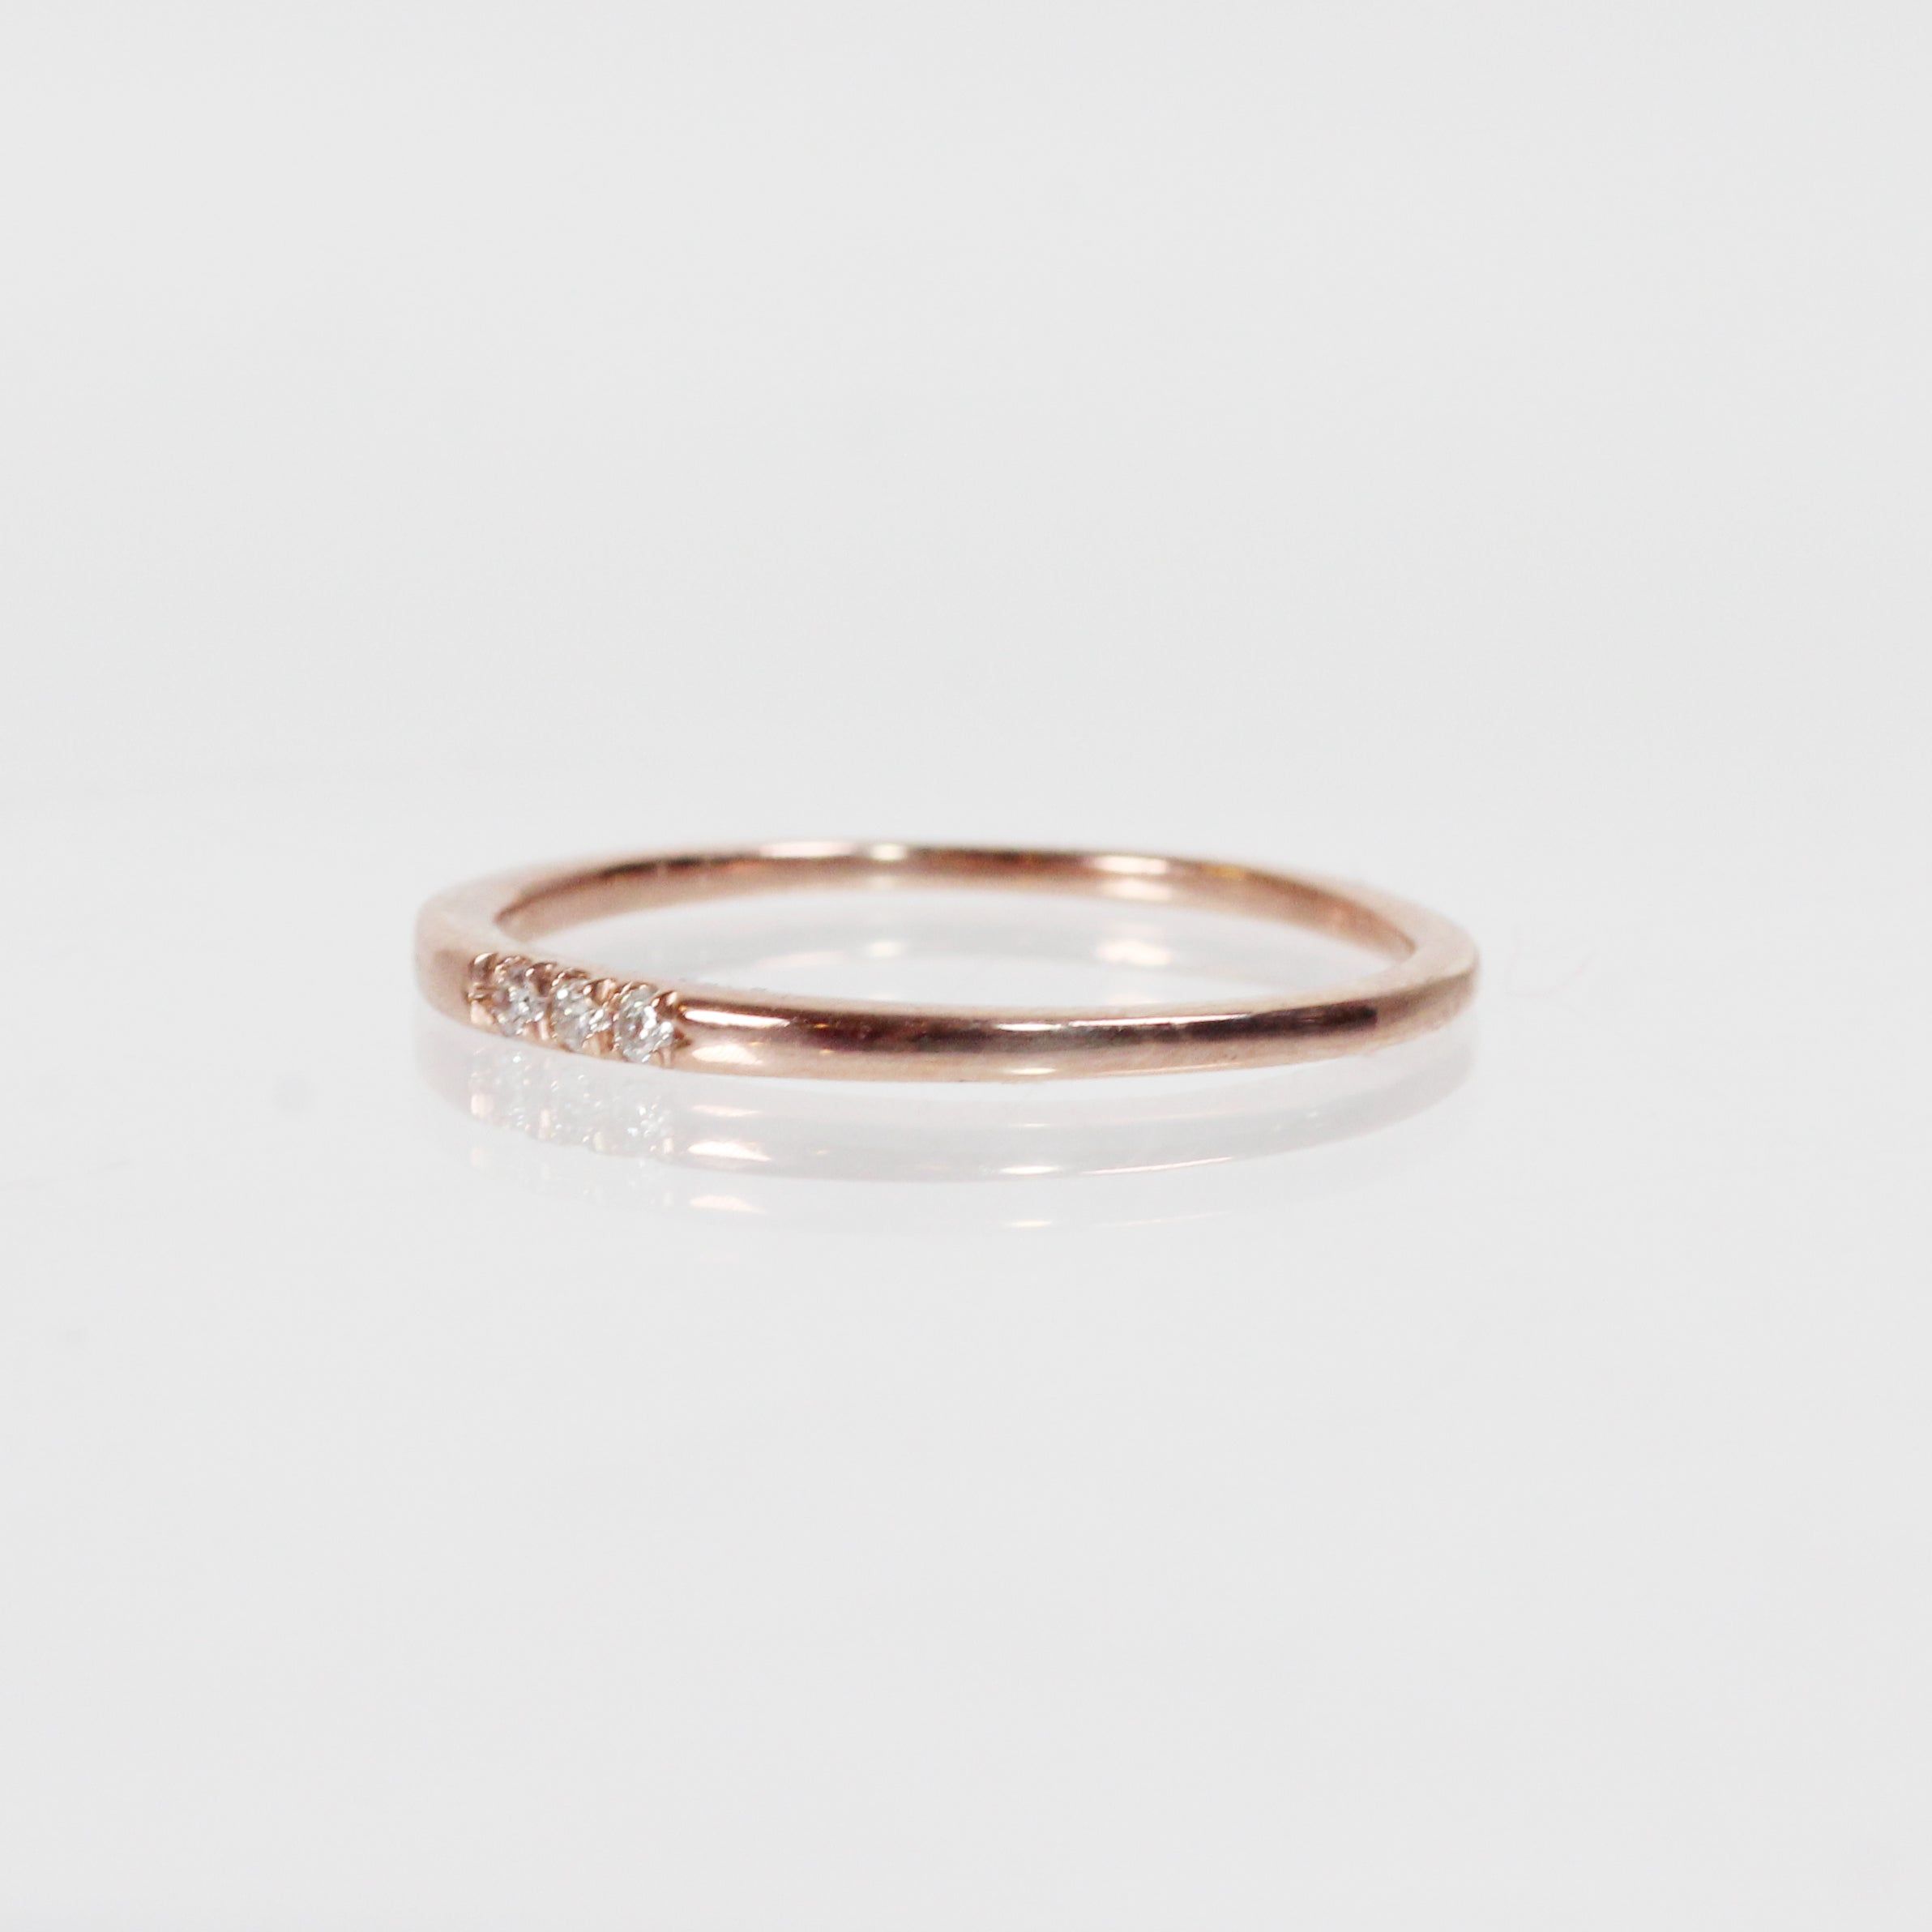 Izzie Minimal Ring - Diamond Band Stackable Ring in Gold - Celestial Diamonds ® by Midwinter Co.